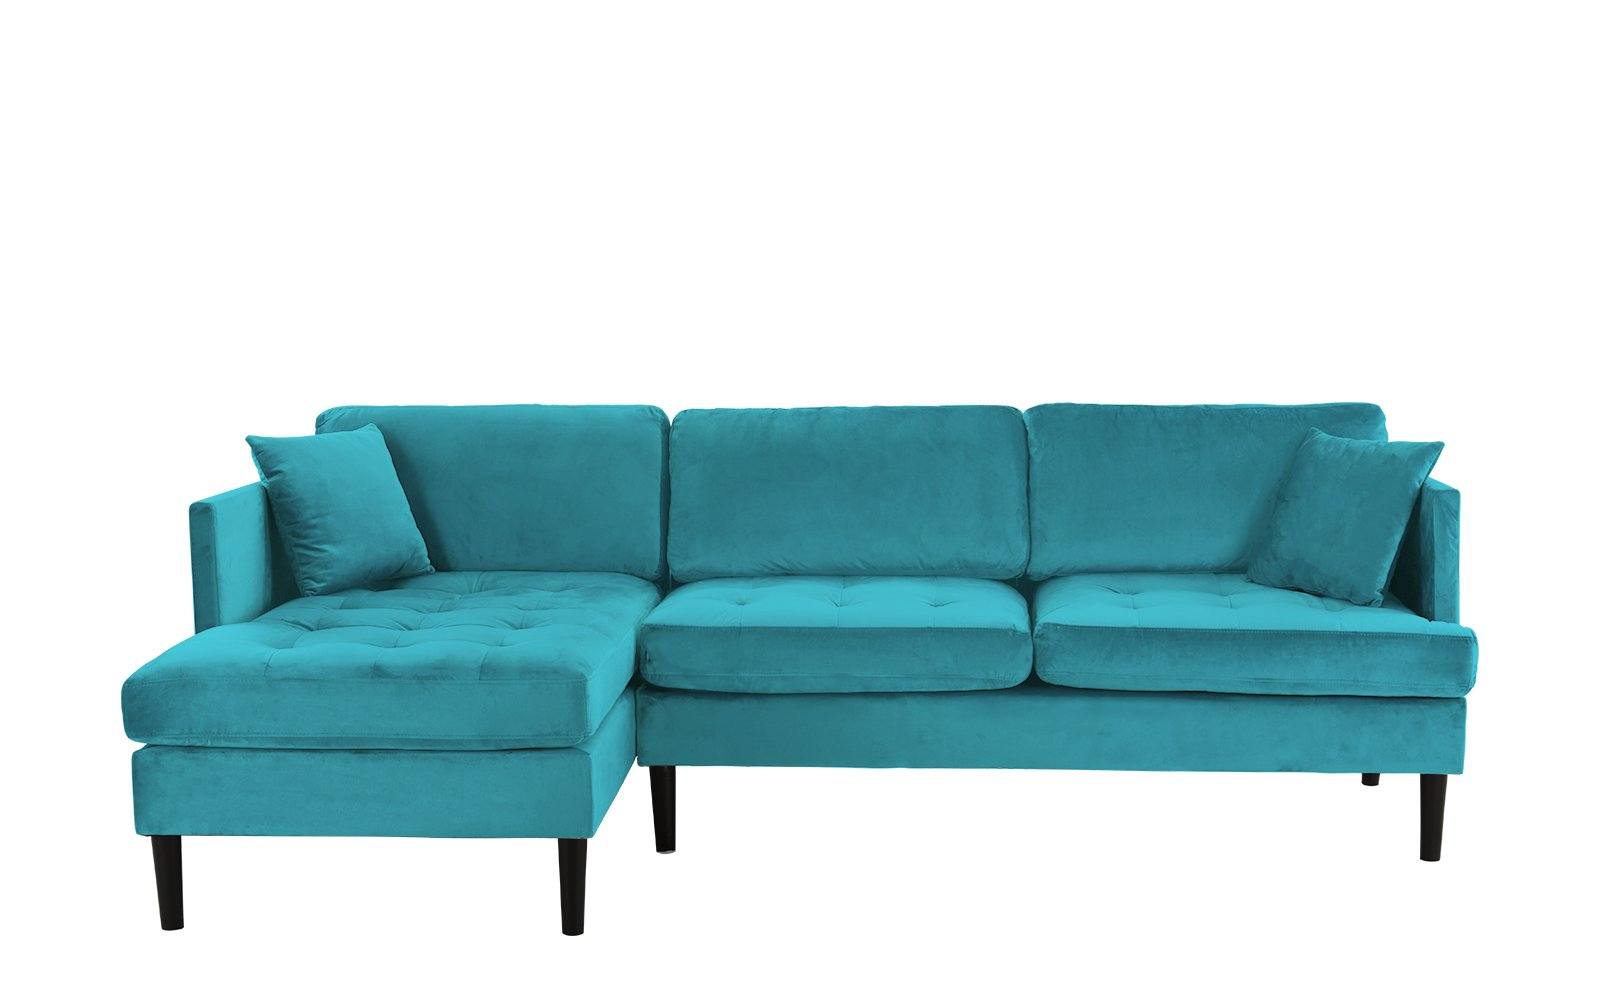 Most Current Mid Century Modern Tufted Velvet Sectional Sofa, Classic L With Regard To Dulce Mid Century Chaise Sofas Dark Blue (View 3 of 20)